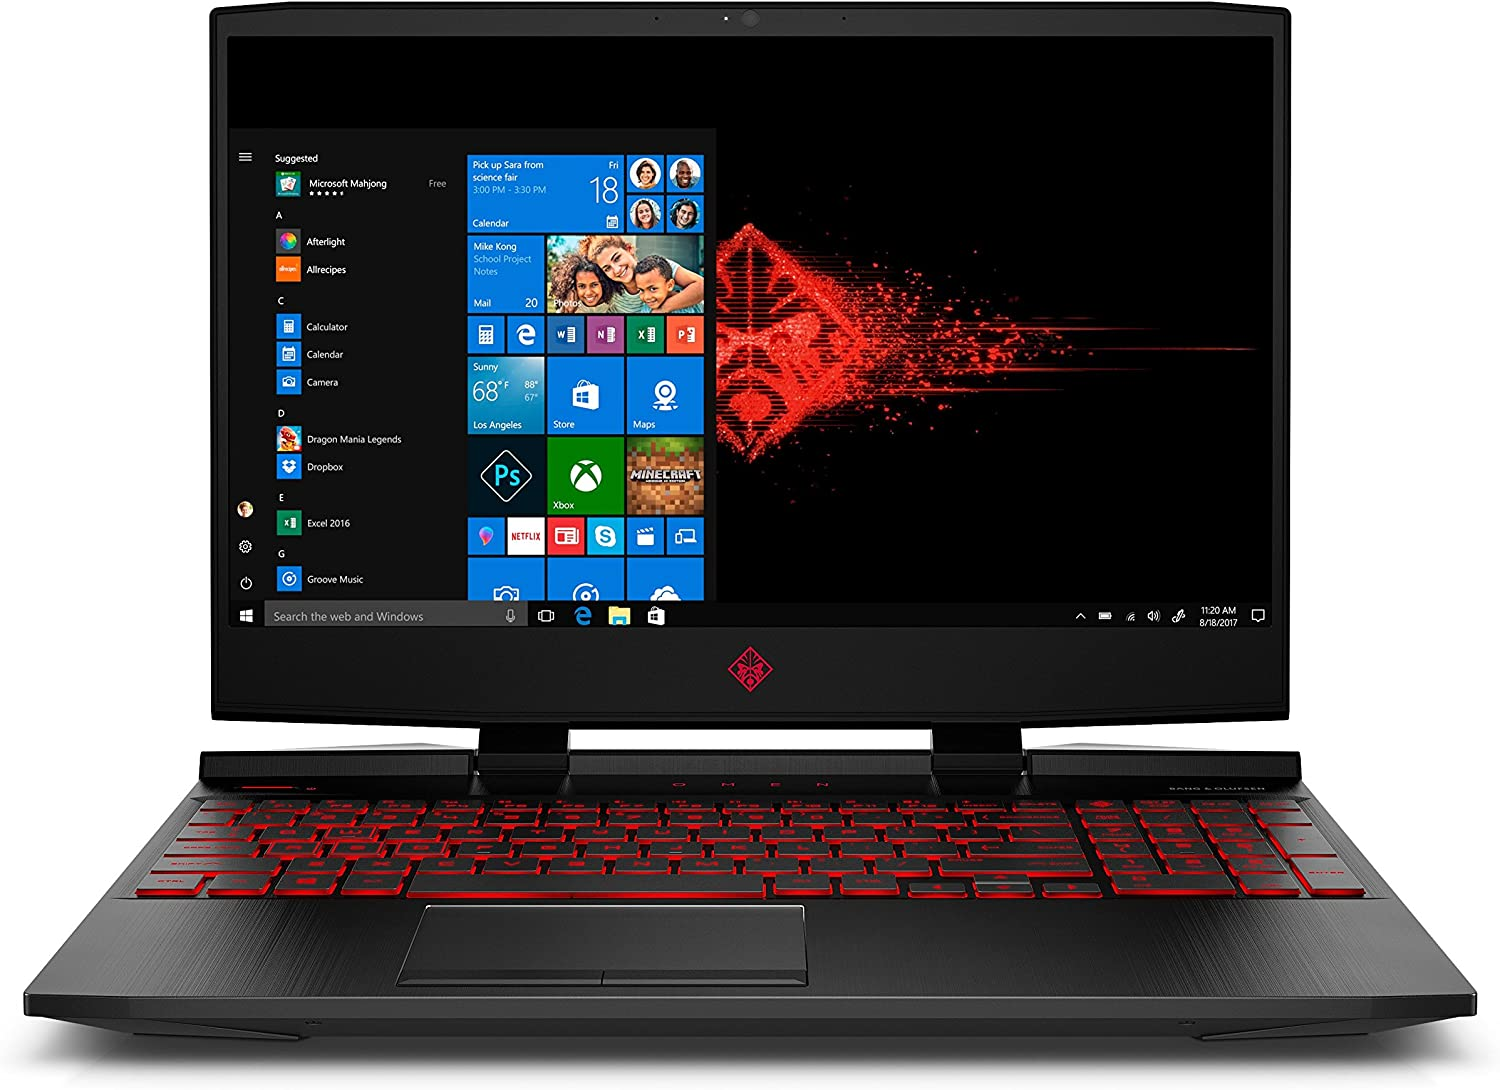 OMEN by HP 15.6-inch Gaming Laptop, i5-8300H Processor, GeForce GTX 1050Ti 4GB, FHD IPS Thin Display, 12GB 2666MHz RAM, 1TB HDD & 128GB PCIE SSD, Windows 10 (15-dc0010nr, Black), Metal